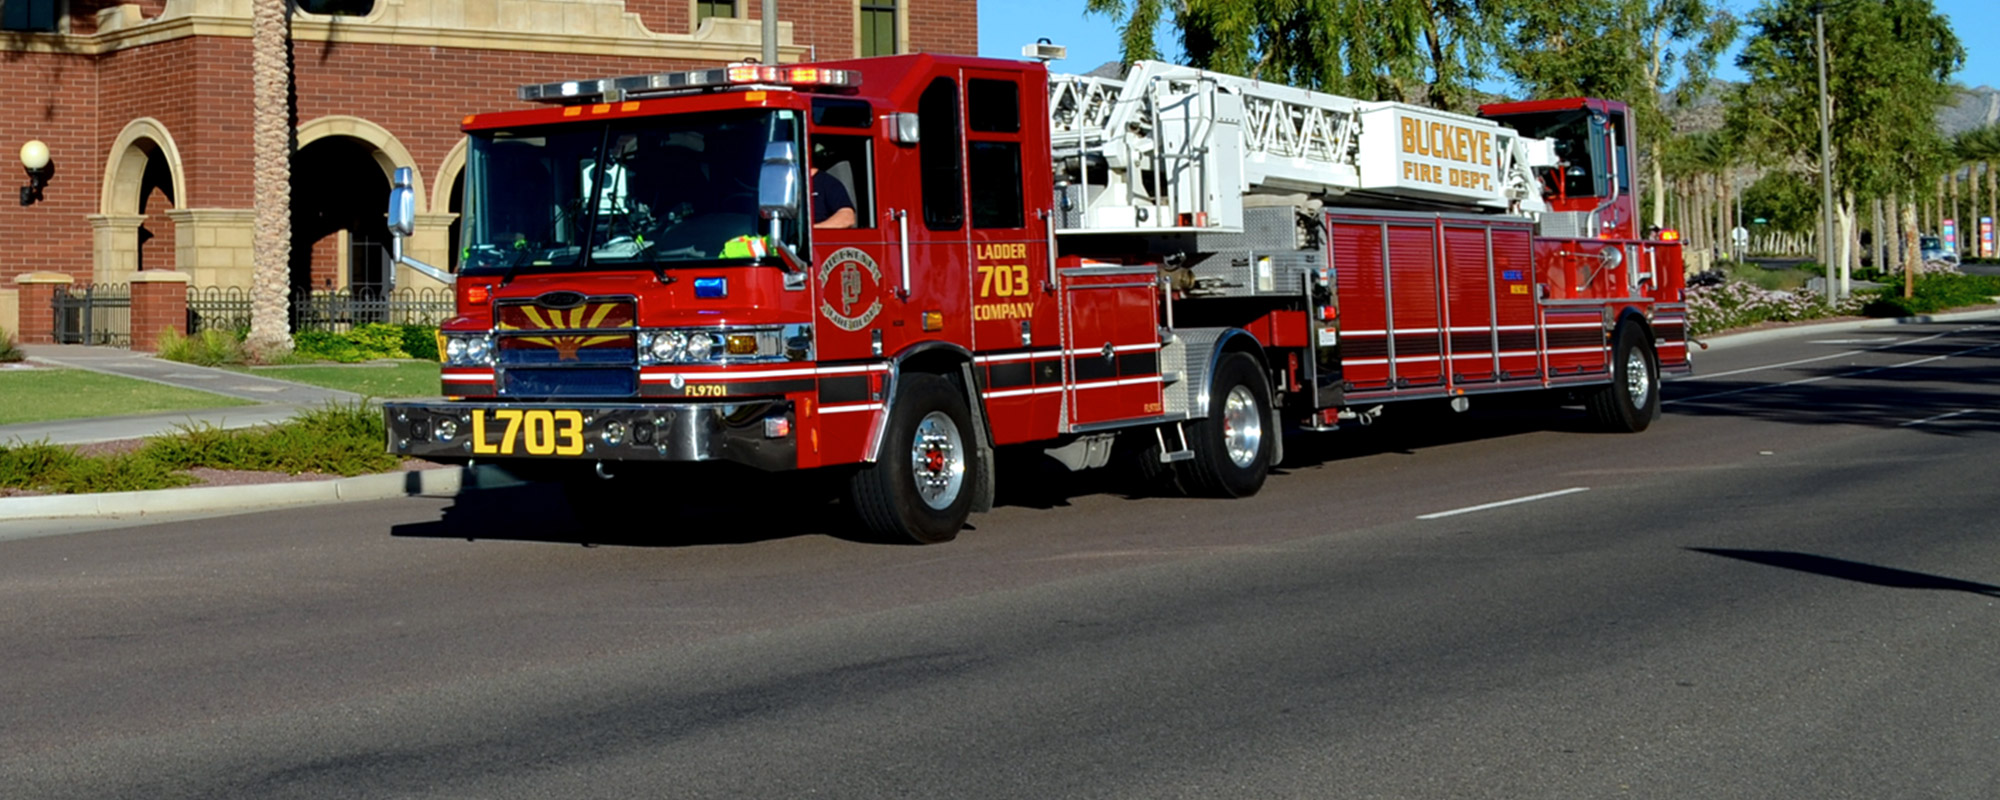 Buckeye and Buckeye Valley Fire Departments Form The First Joint COVID-19 Response Unit in Arizona